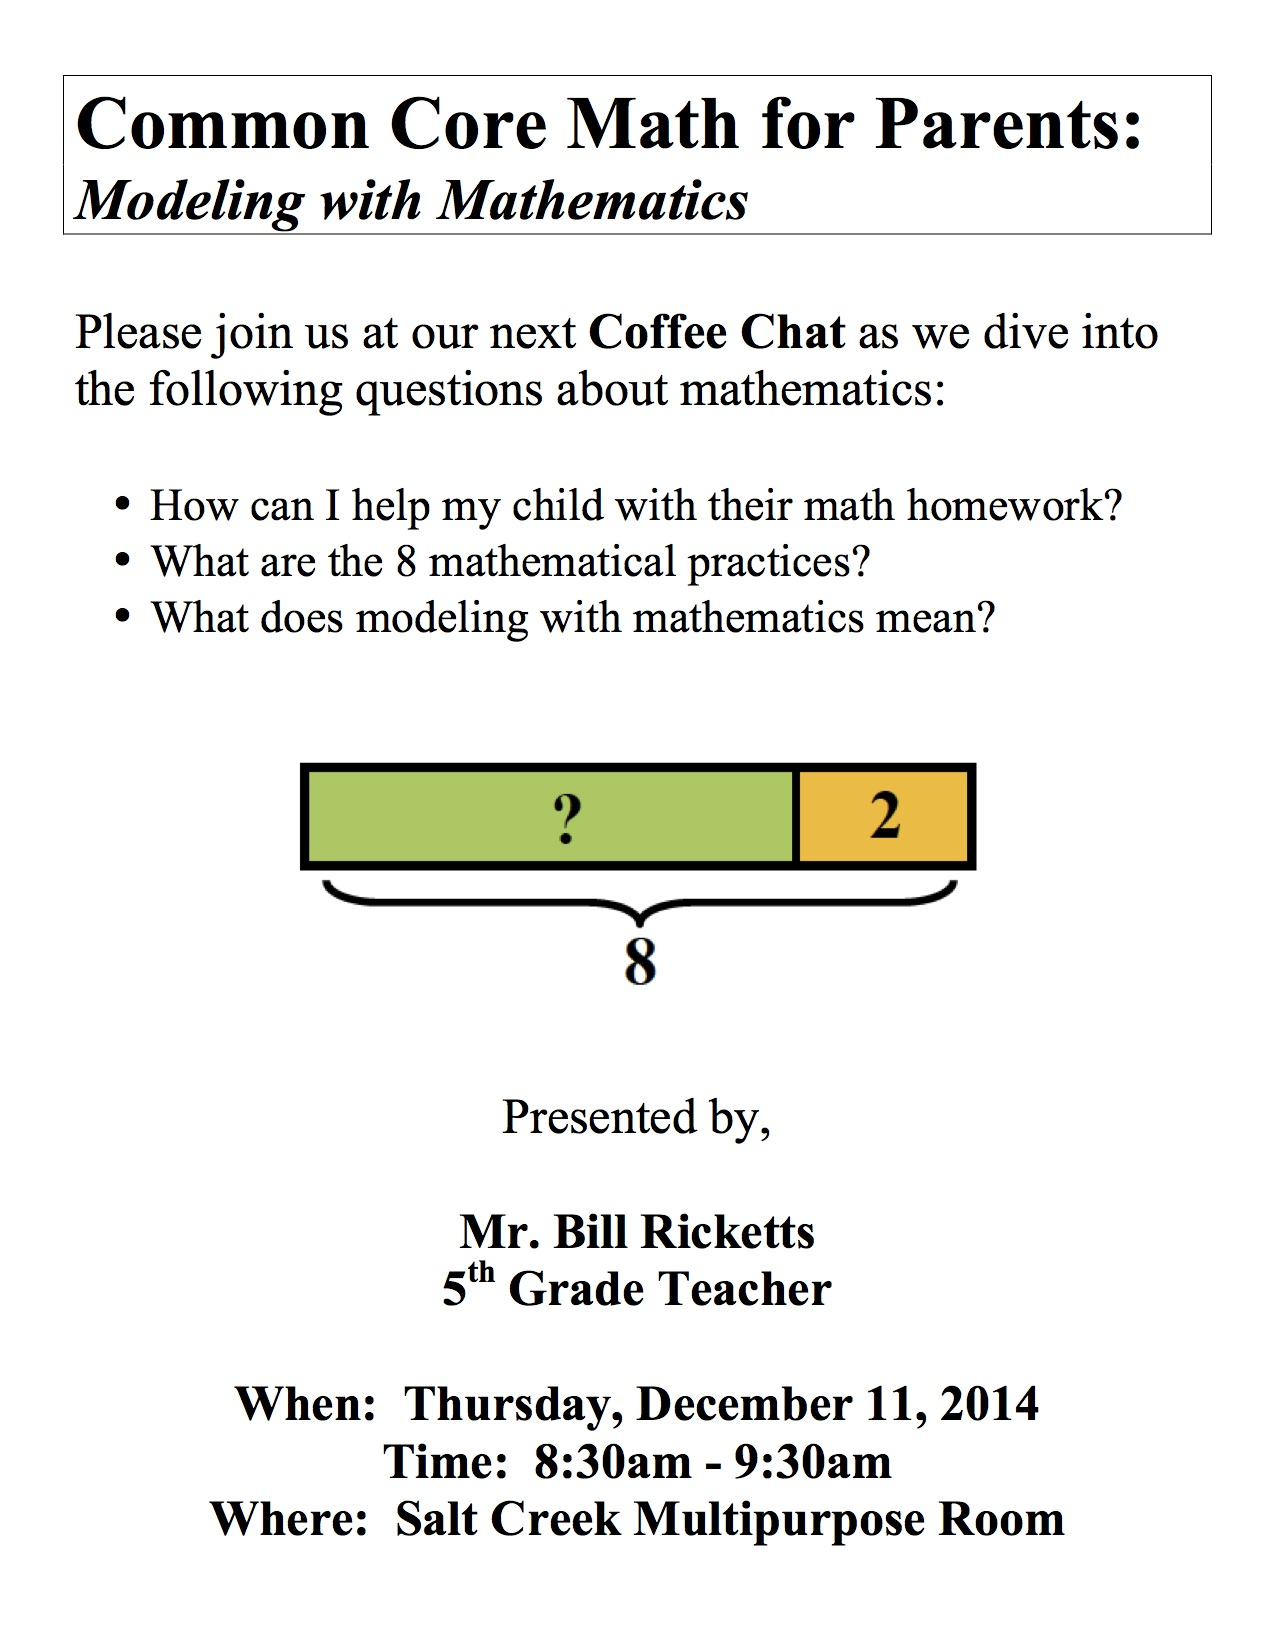 Coffee Chat Topic Modeling With Mathematics This